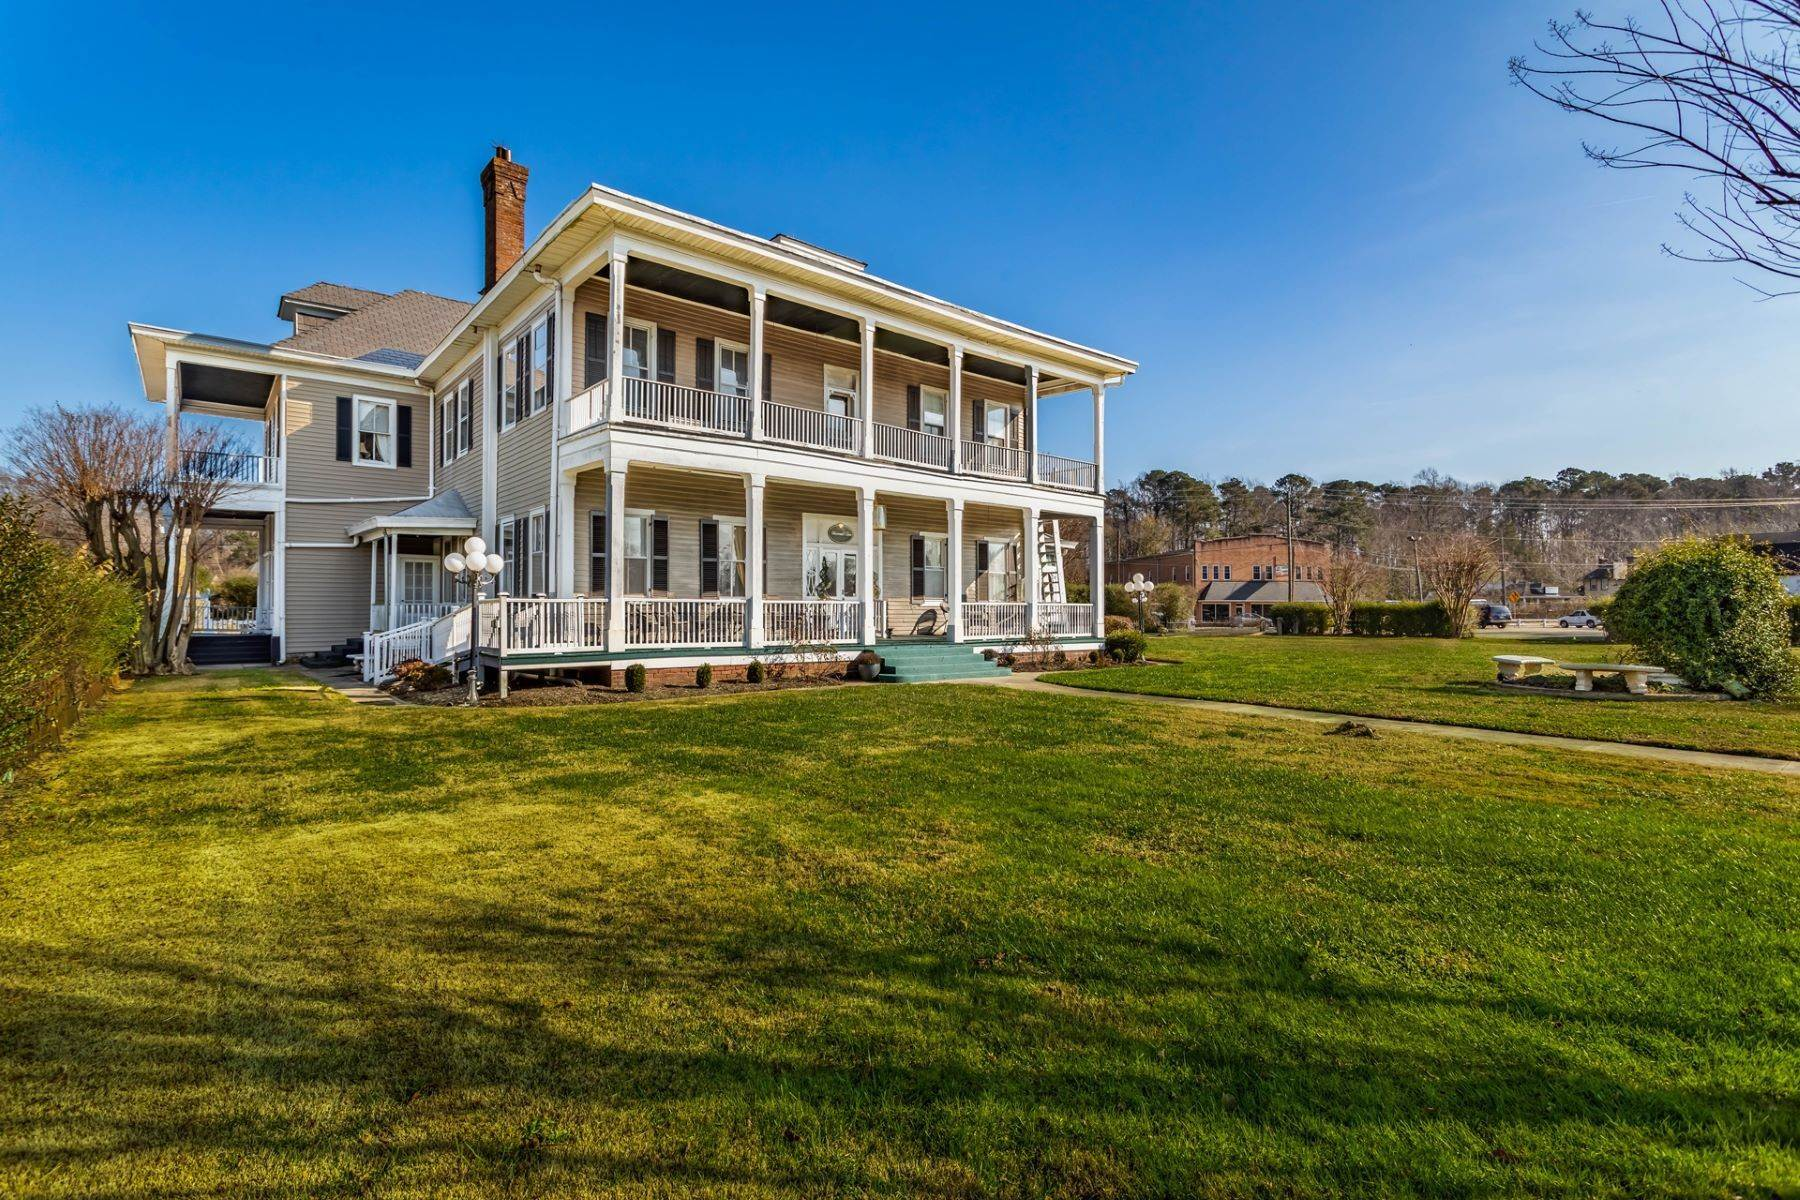 Property for Sale at Historic Boxwood Inn 10 Elmhurst Street Newport News, Virginia 23603 United States